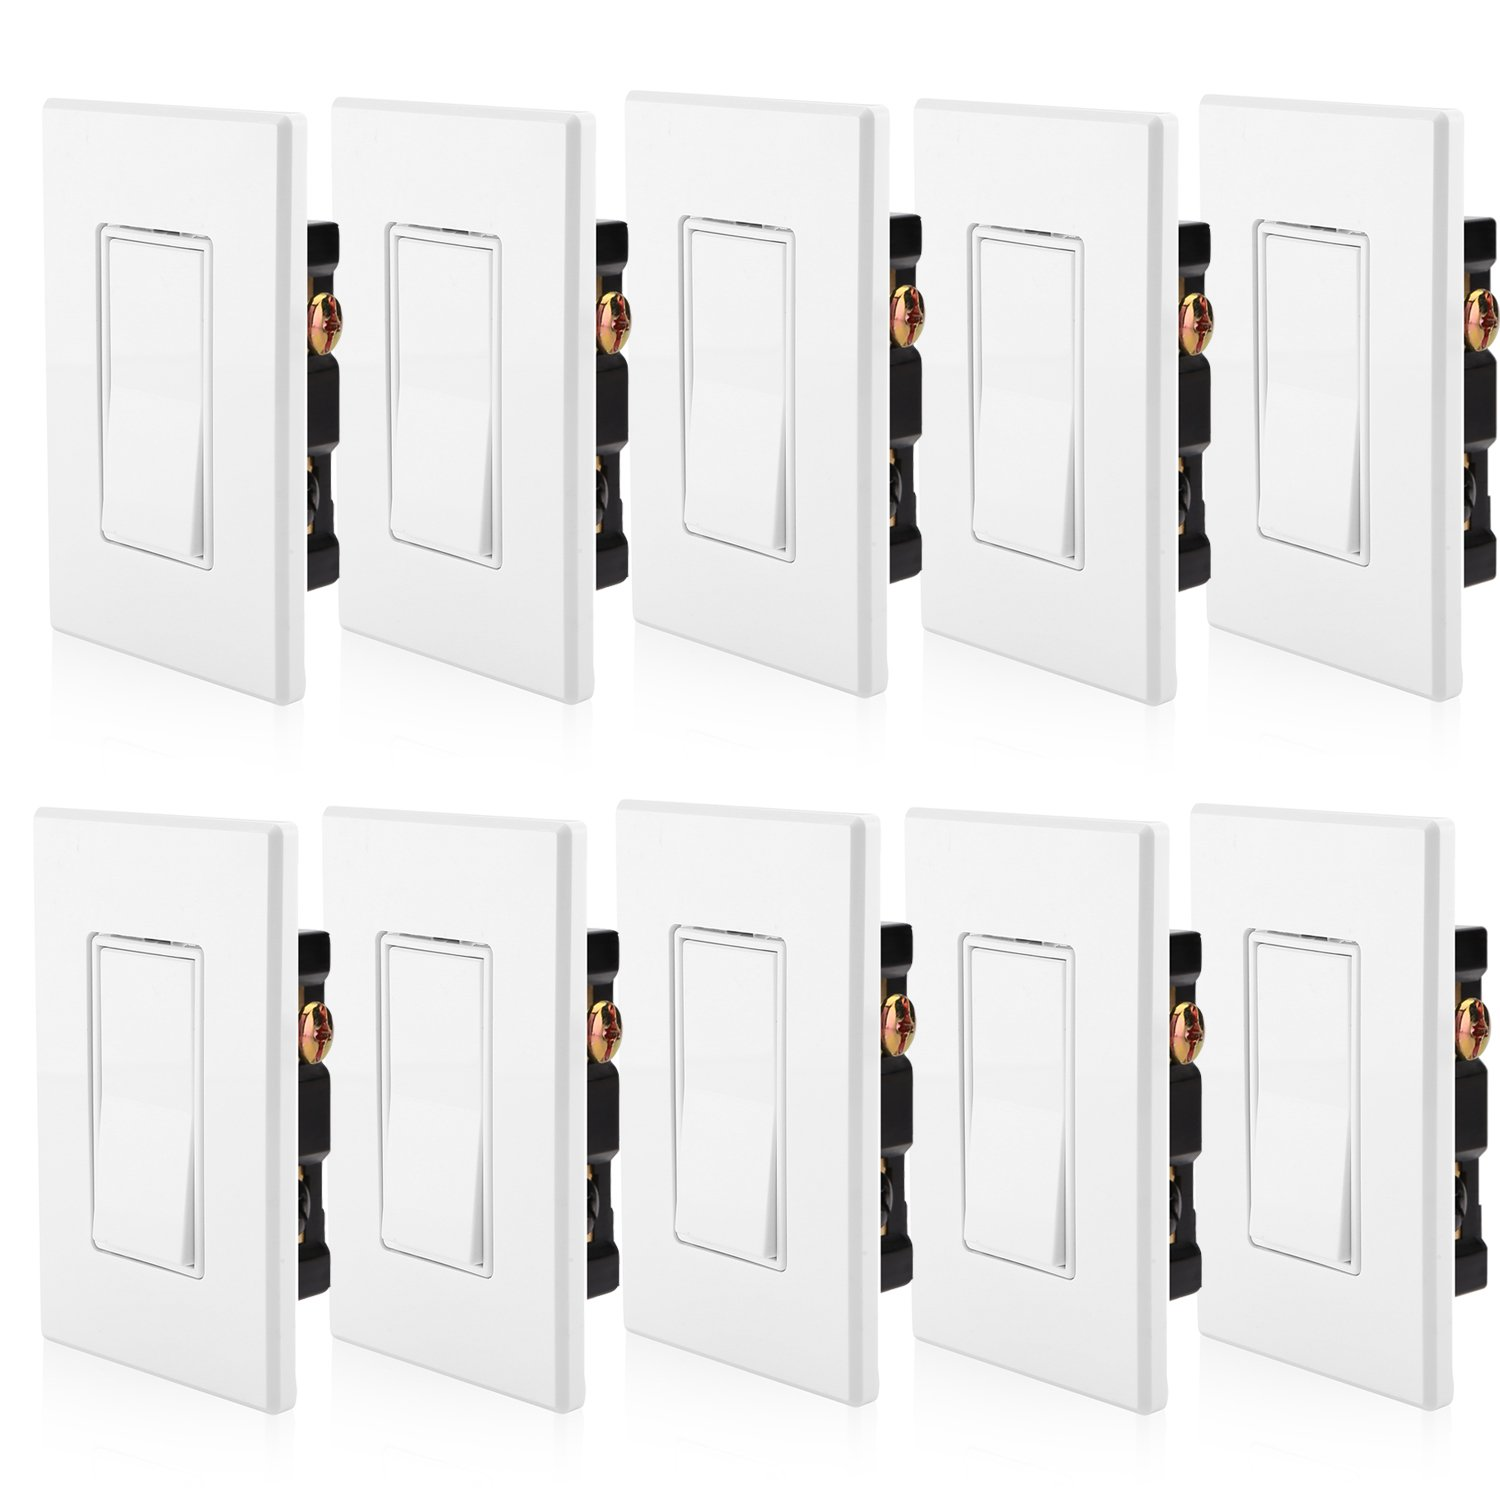 [10 Pack] BESTTEN Single-Pole Decorative On/Off Rocker Quiet Wall Light Switch, Screwless Wall Plate Included, Residential & Commercial Grade, Grounding, UL Listed, White